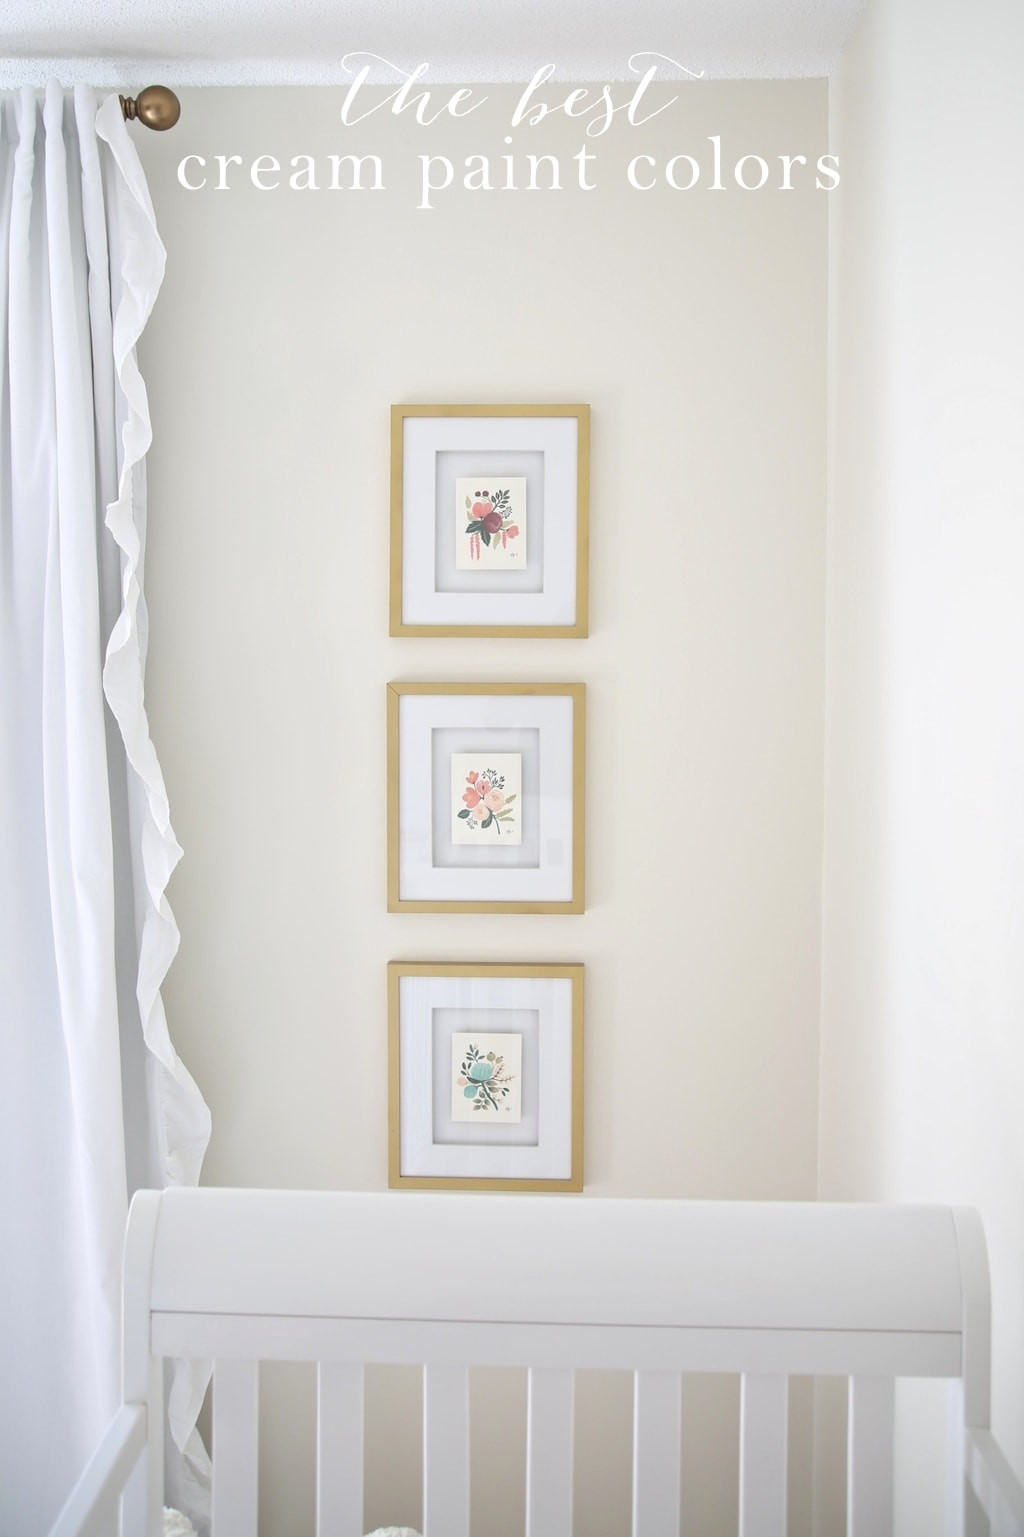 Best ideas about Cream Paint Colors . Save or Pin The Best Cream Paint Colors Now.